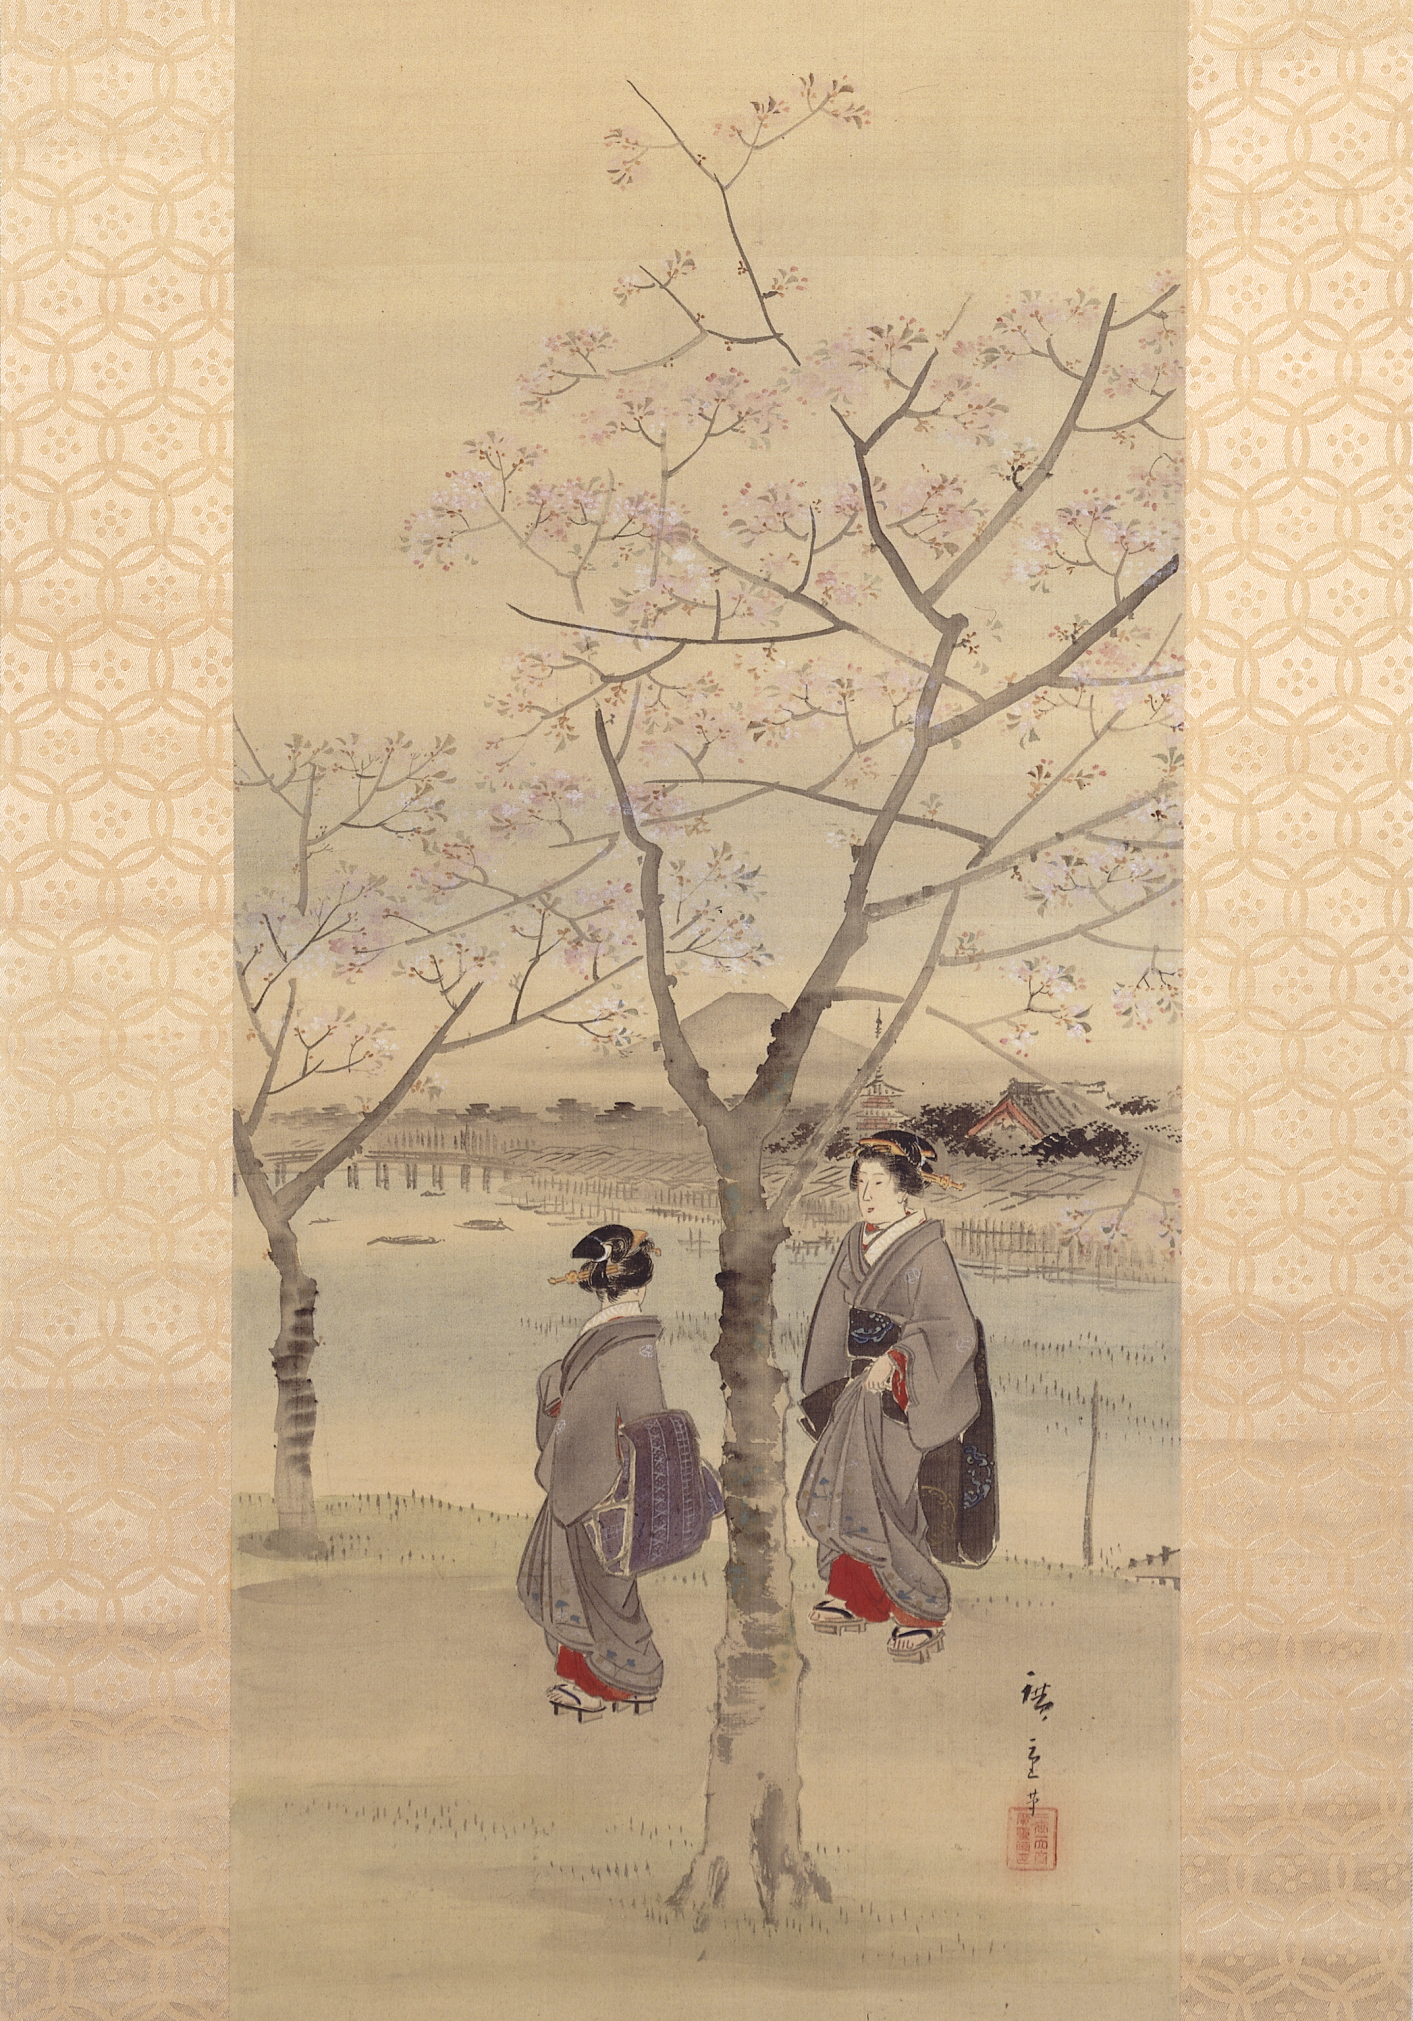 A painted hanging scroll depicting two women beneath cherry trees by a river. The trees have pink blossom. A  townscape and mountain trail away into the distance.